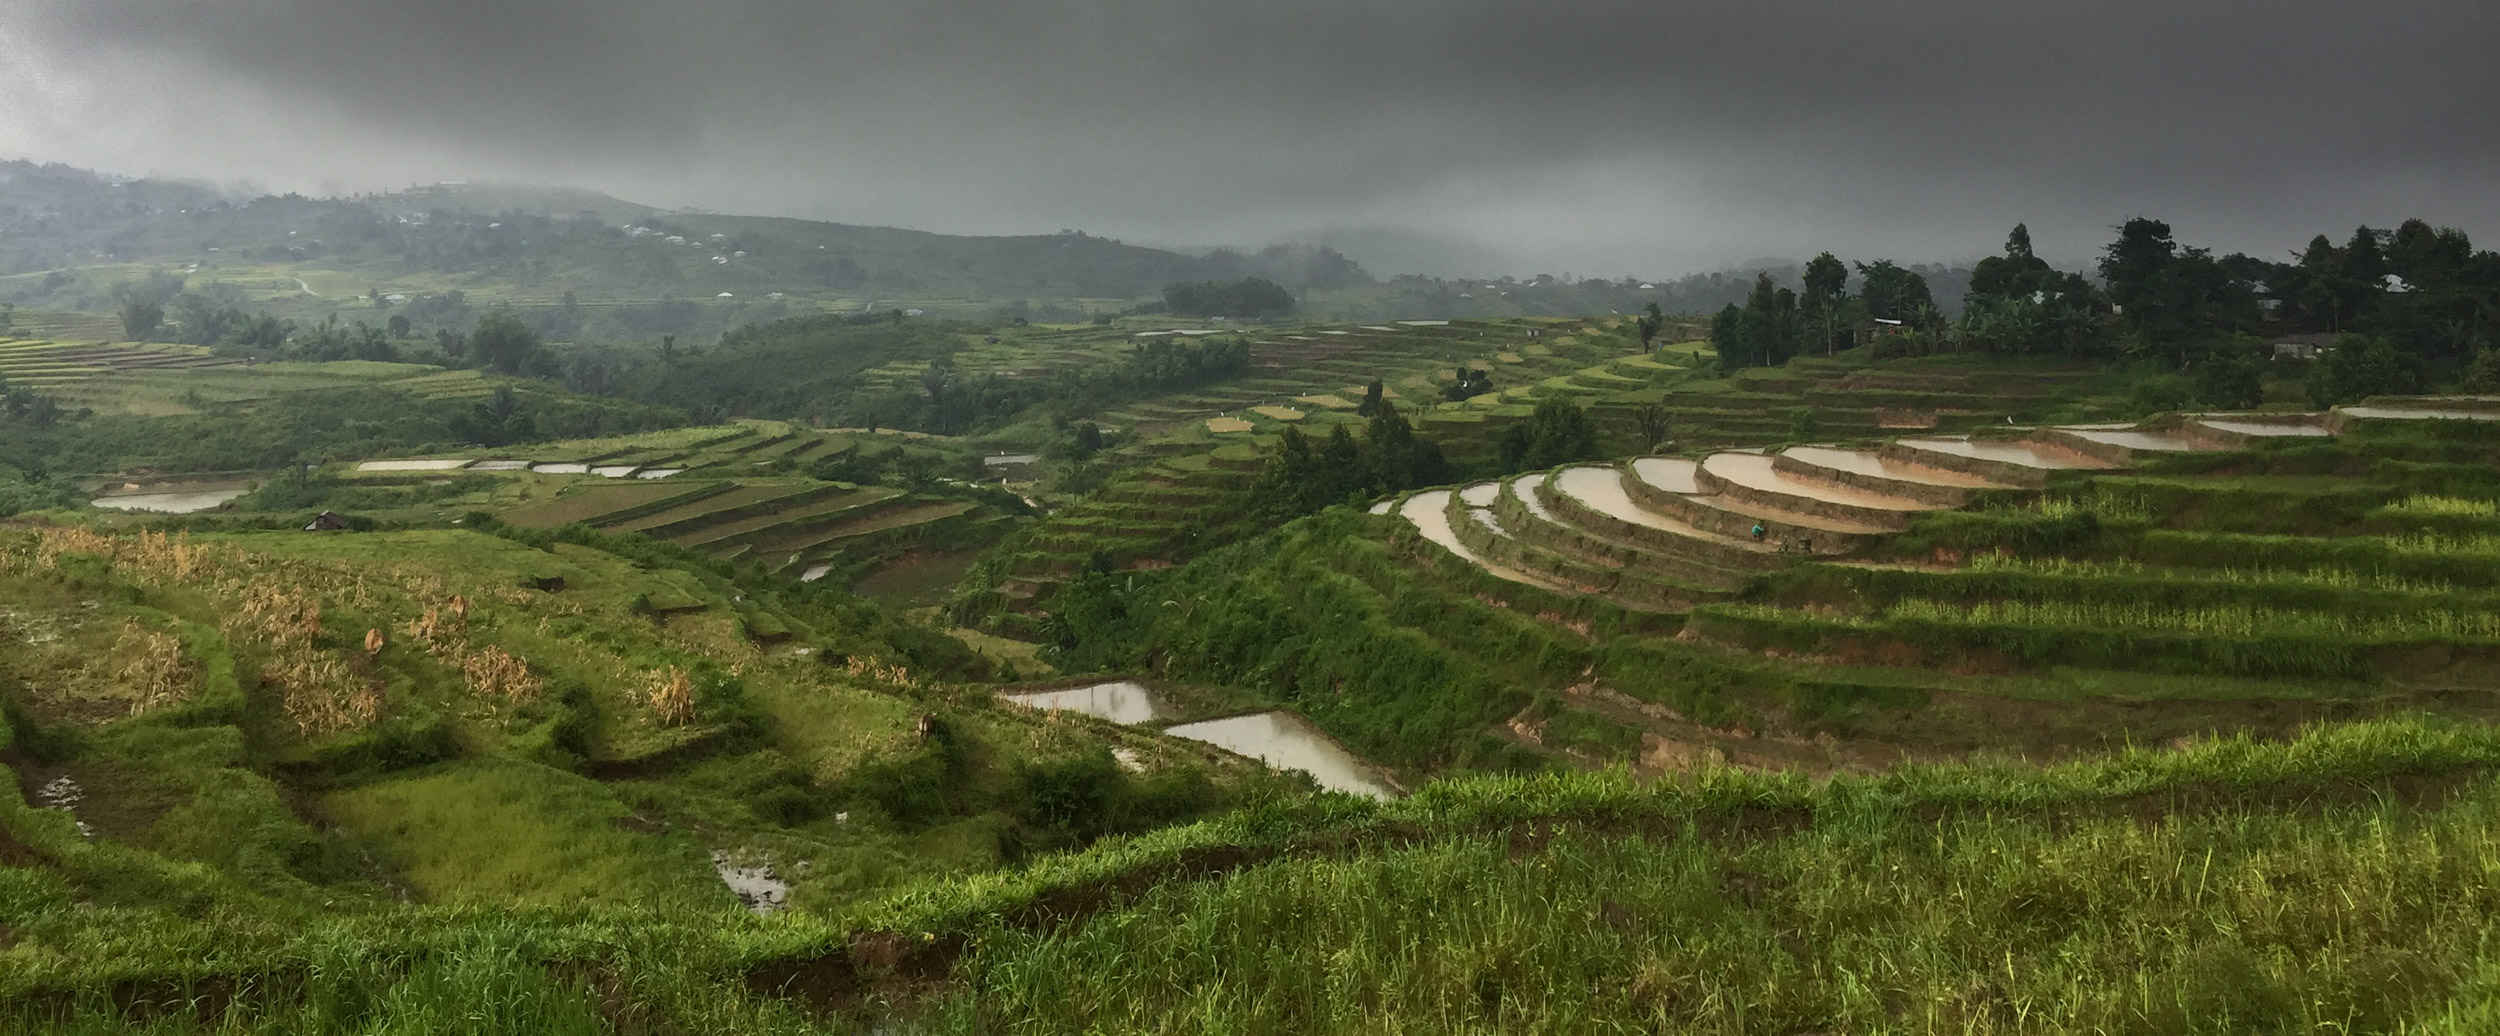 Terraced Paddy Fields.... Beautiful even in the horrific weather....